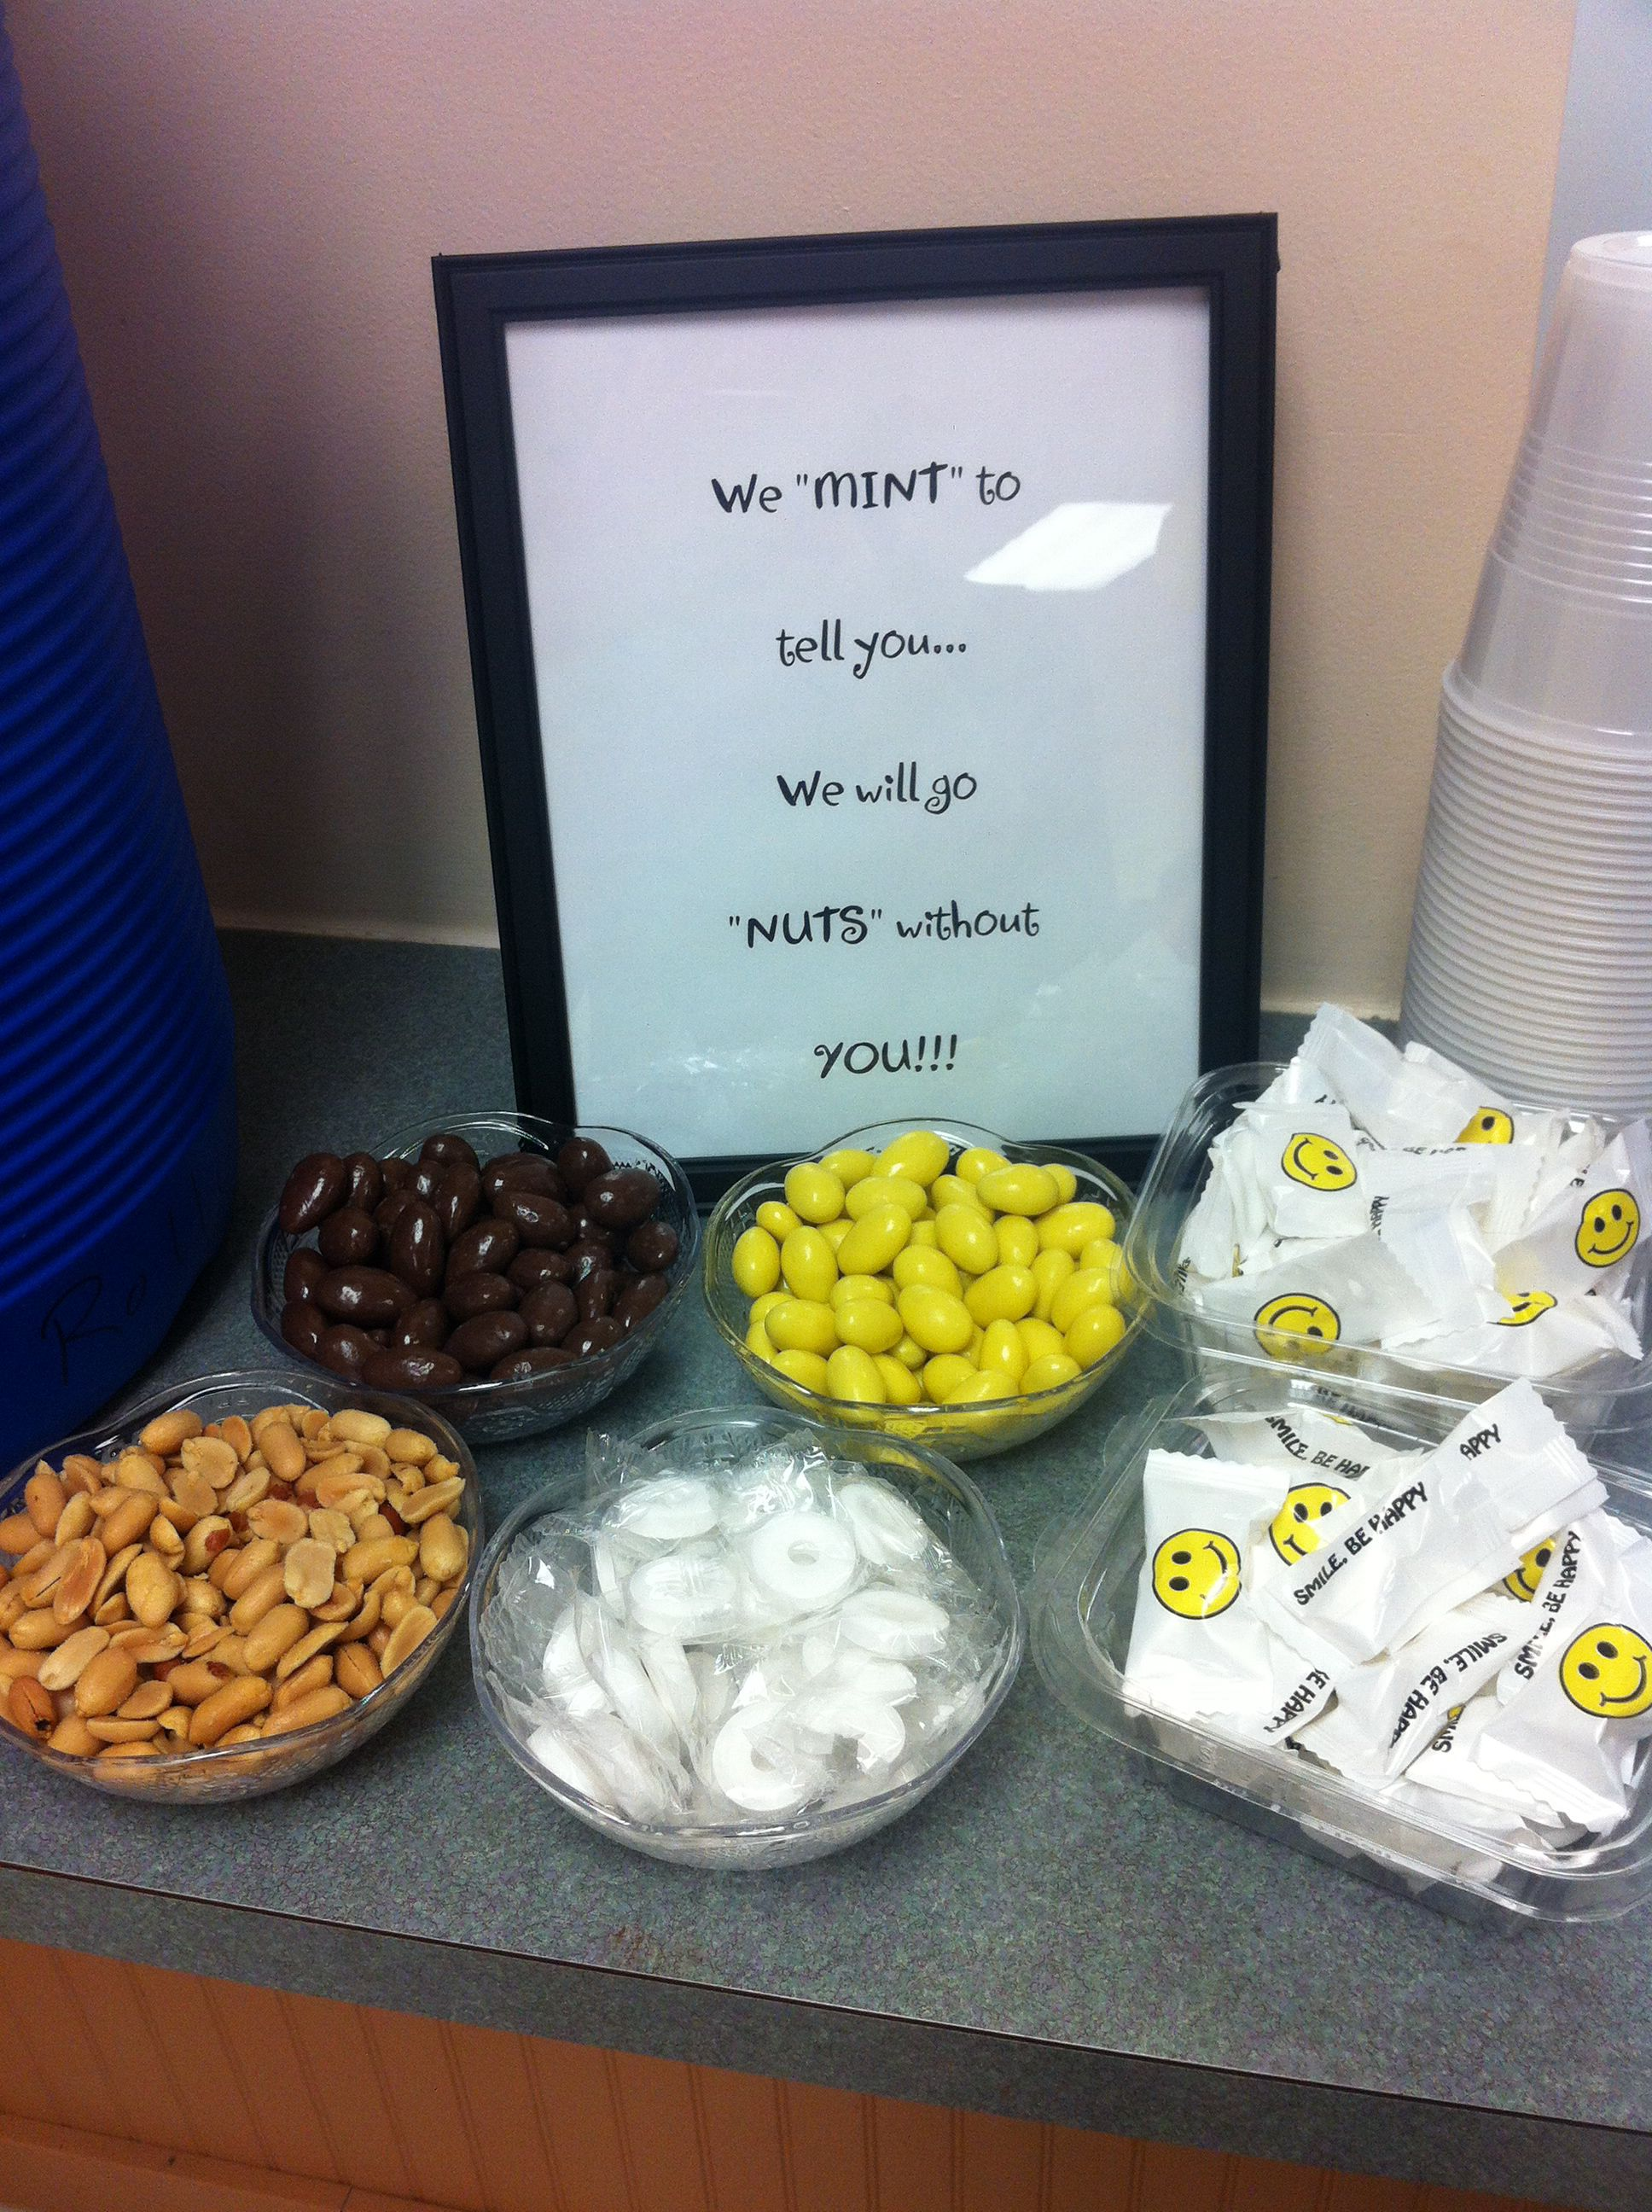 Farewell ideas for coworkers - Using This At Our Coworkers Going Away Potluck